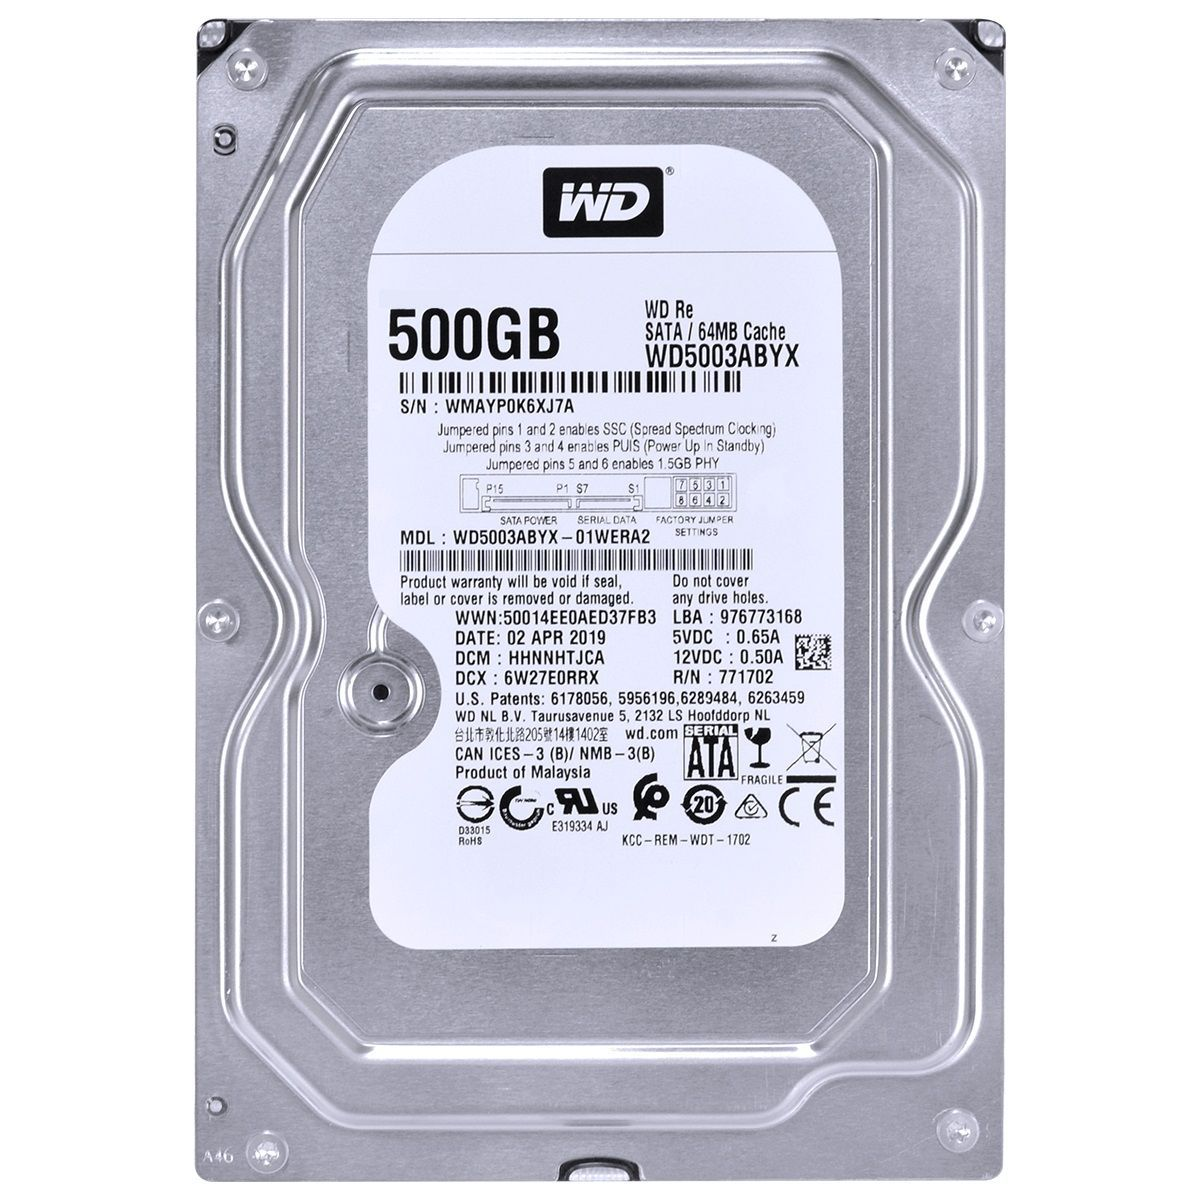 HD 500GB 7200rpm 3,5 Sata II 64MB WD5003ABYX  - Western Digital